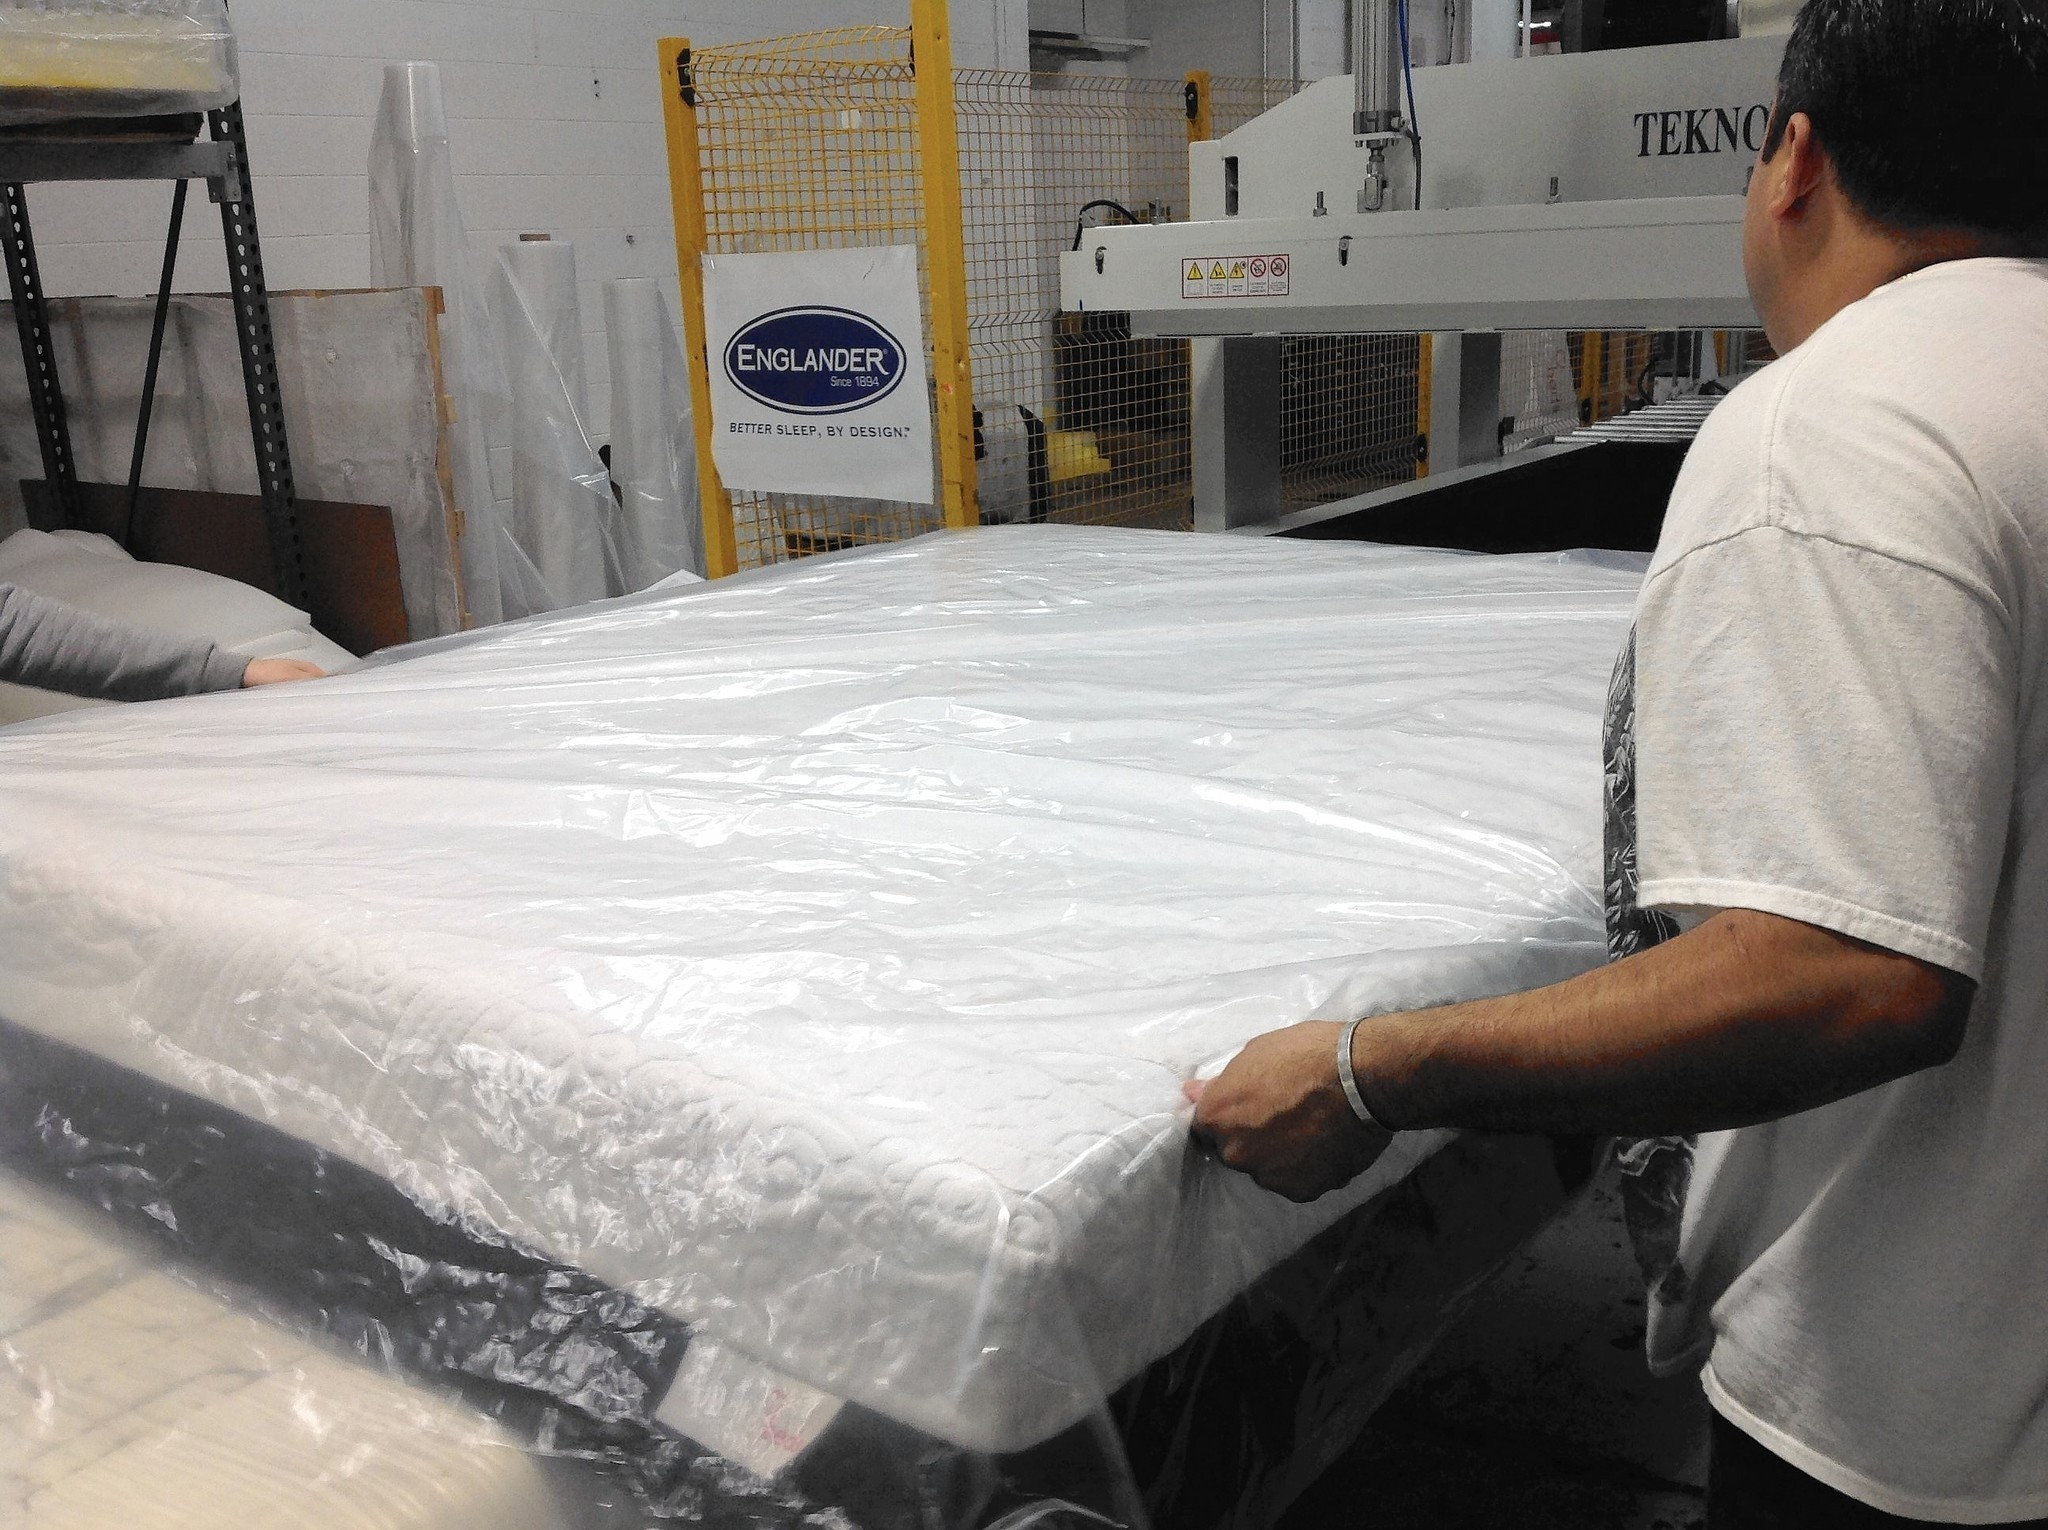 Mattress company aims to please bedding split personalities